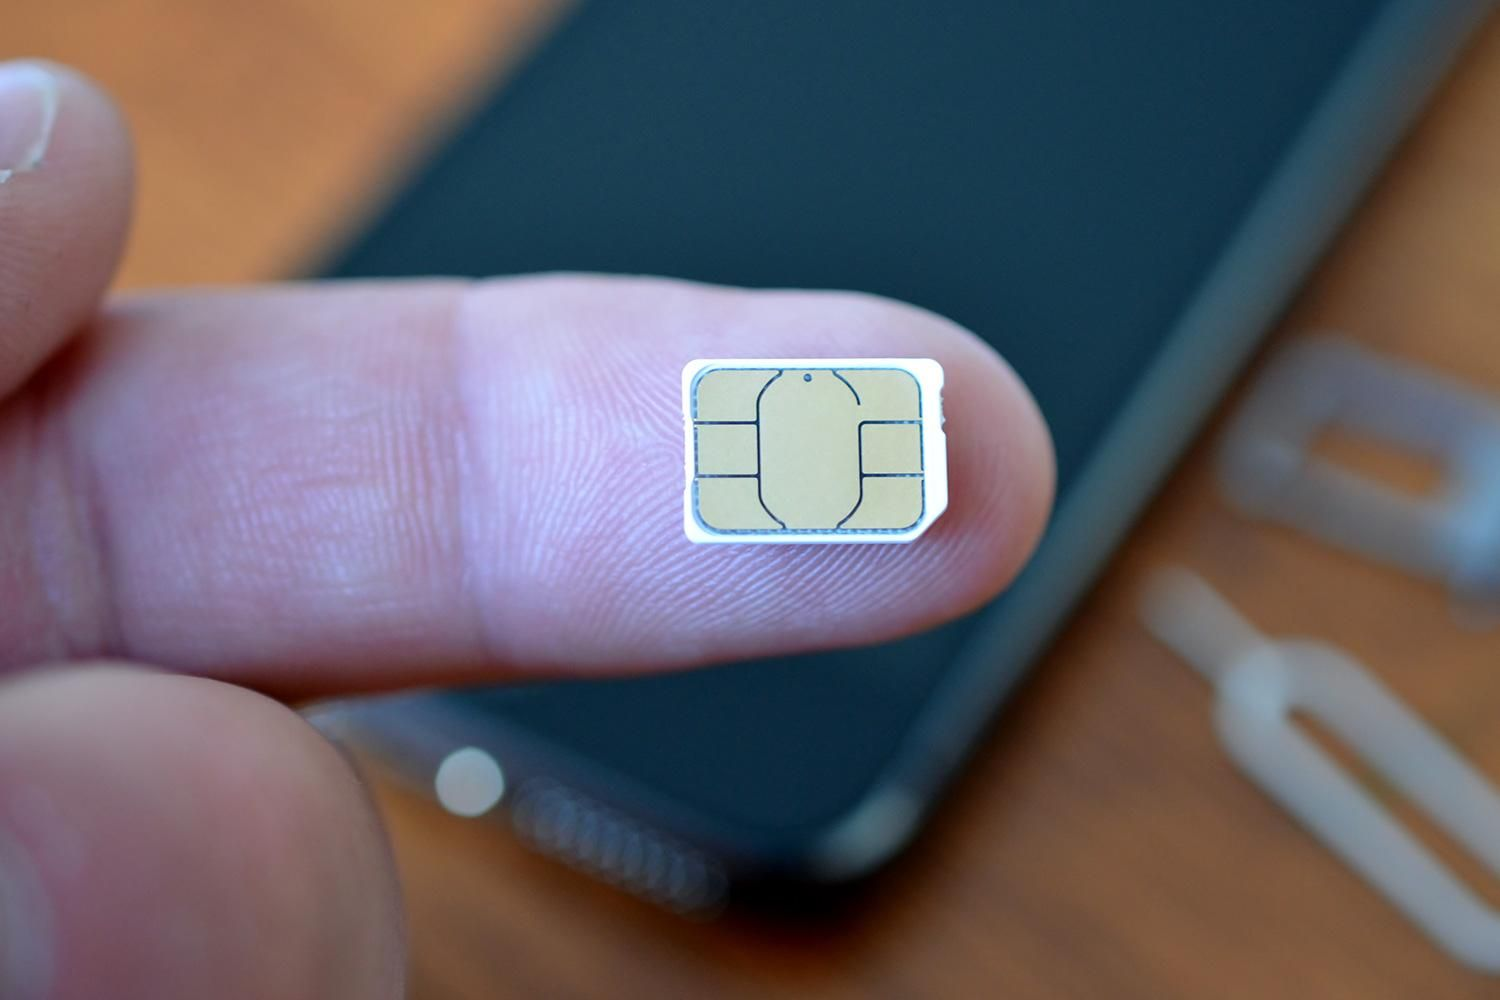 Free yourself! How to unlock your phone from the icy hands of your wireless carrier By Williams Pelegrin